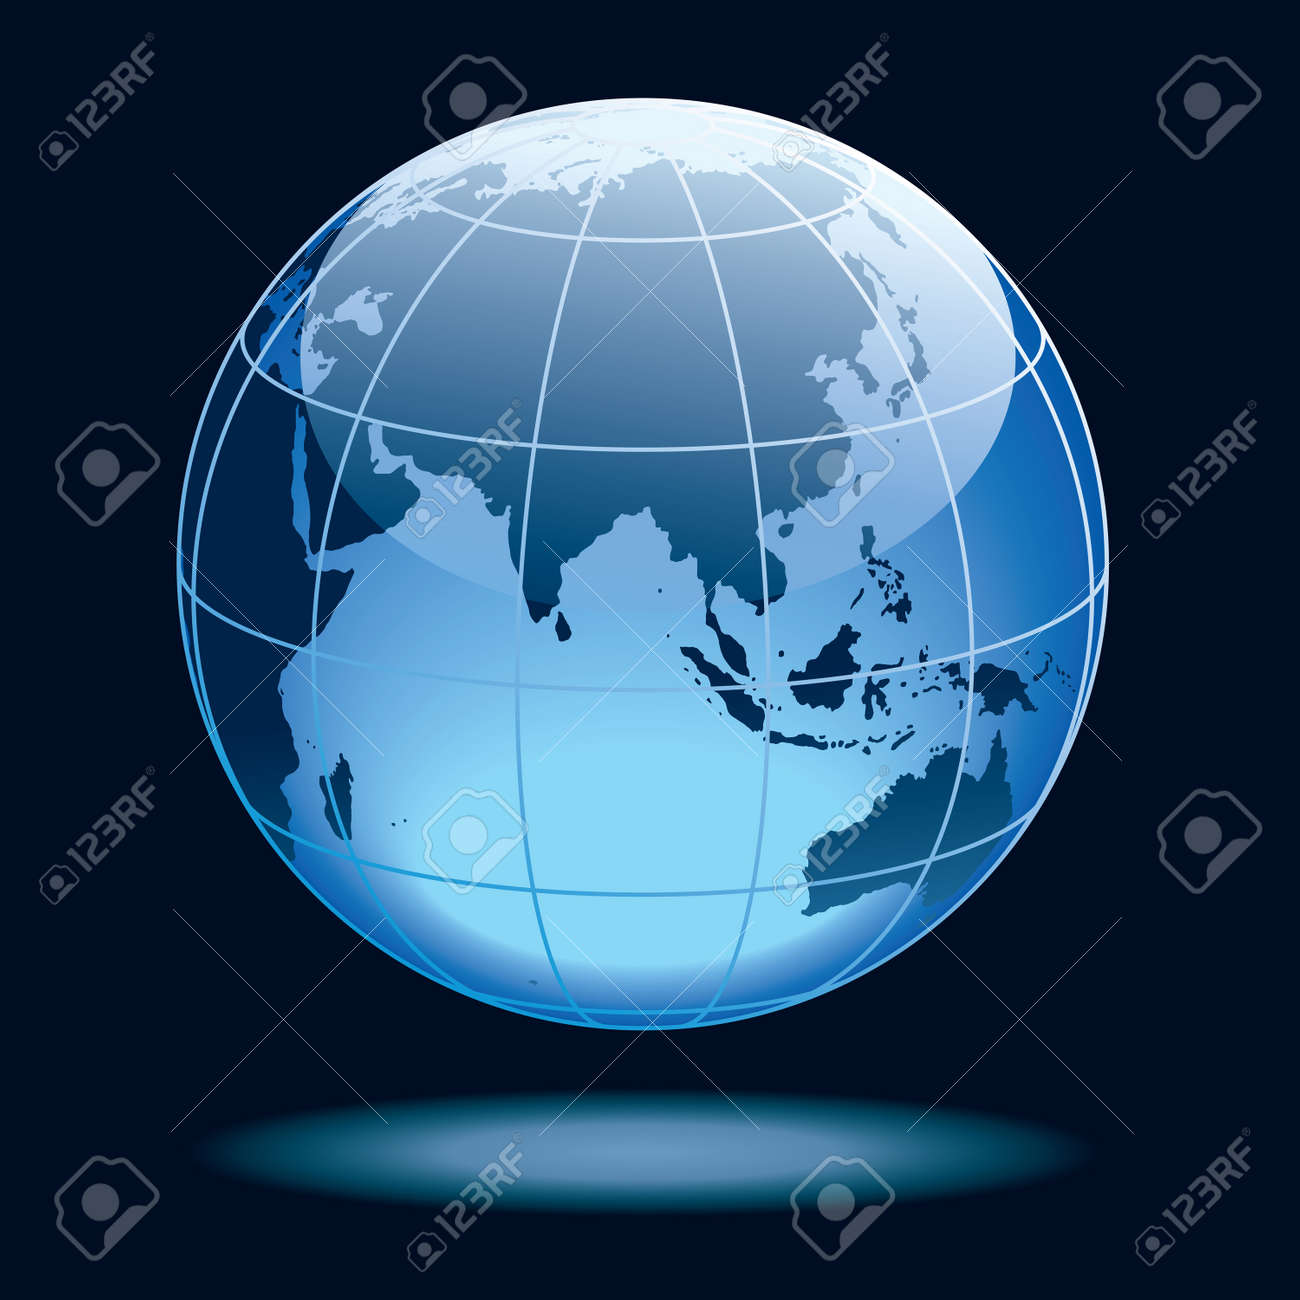 Globe showing earth with continents: Asia with Africa and Australia. Stock Vector - 7558574